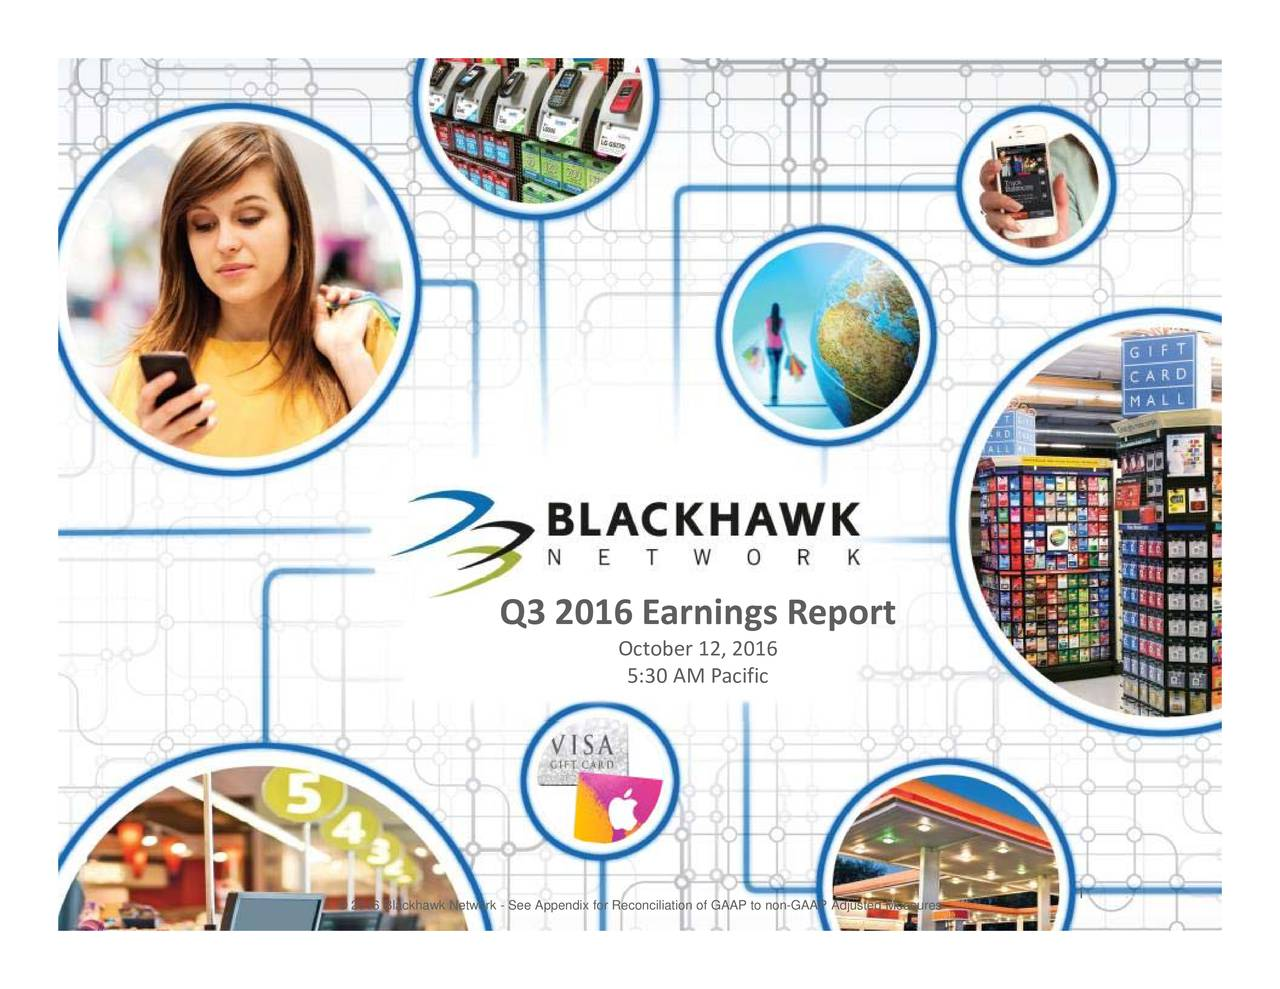 eport 016 2,acific M Earnings iliation of GAAP to non-GAAP Adjusted Measures October 016 Q3 2016 Blackhawk Network - See Appendix for Reconc